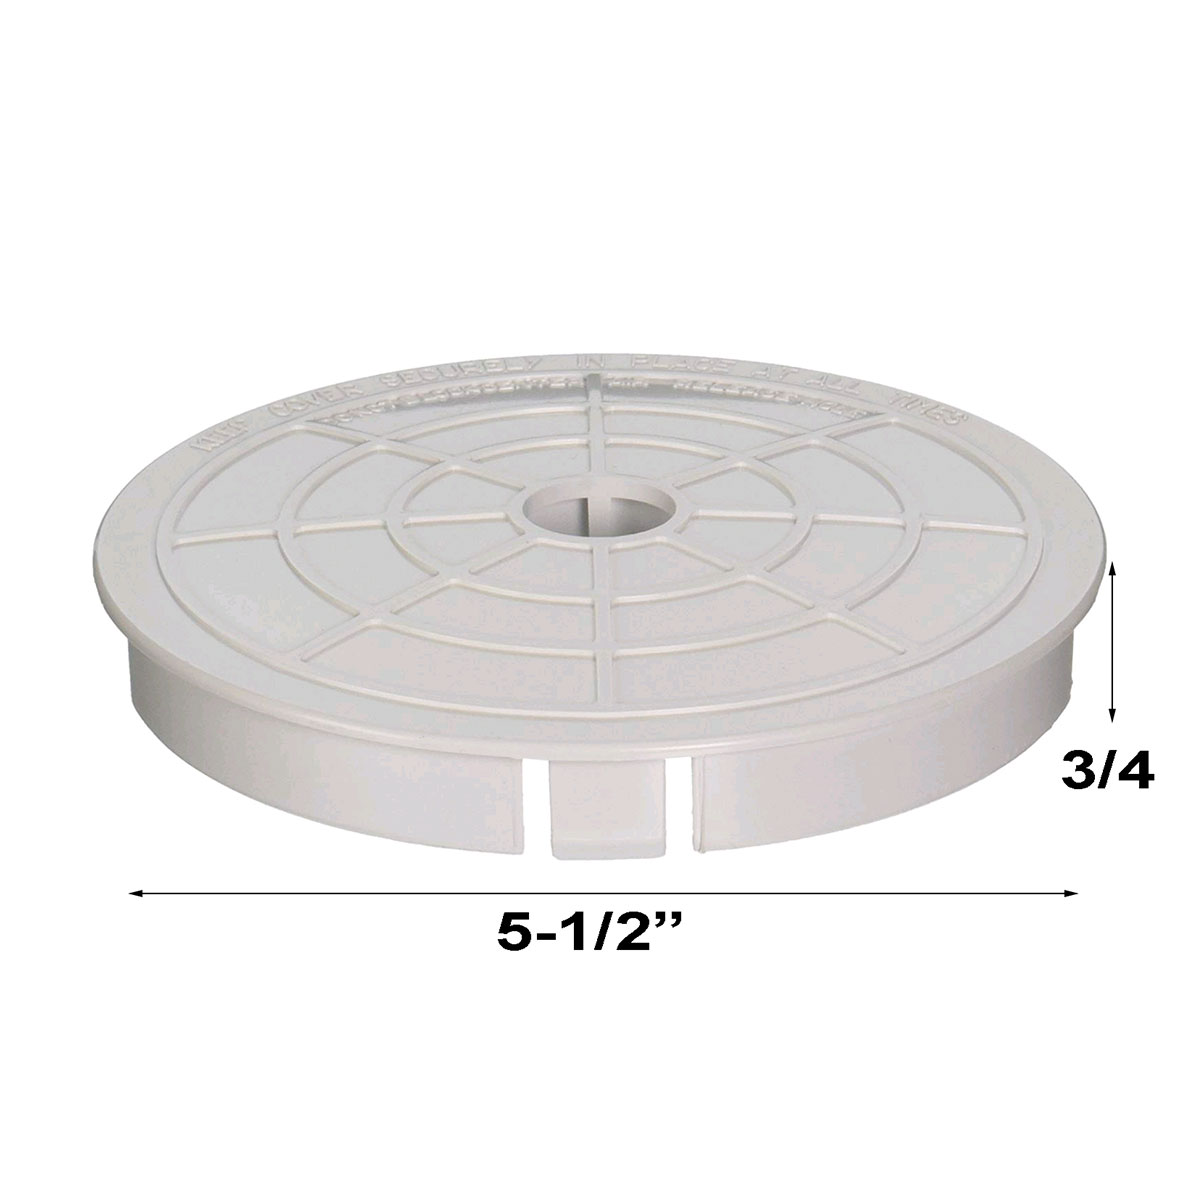 Hayward Lid Round, Above Ground SP1094/SP1095 - SPX1094C